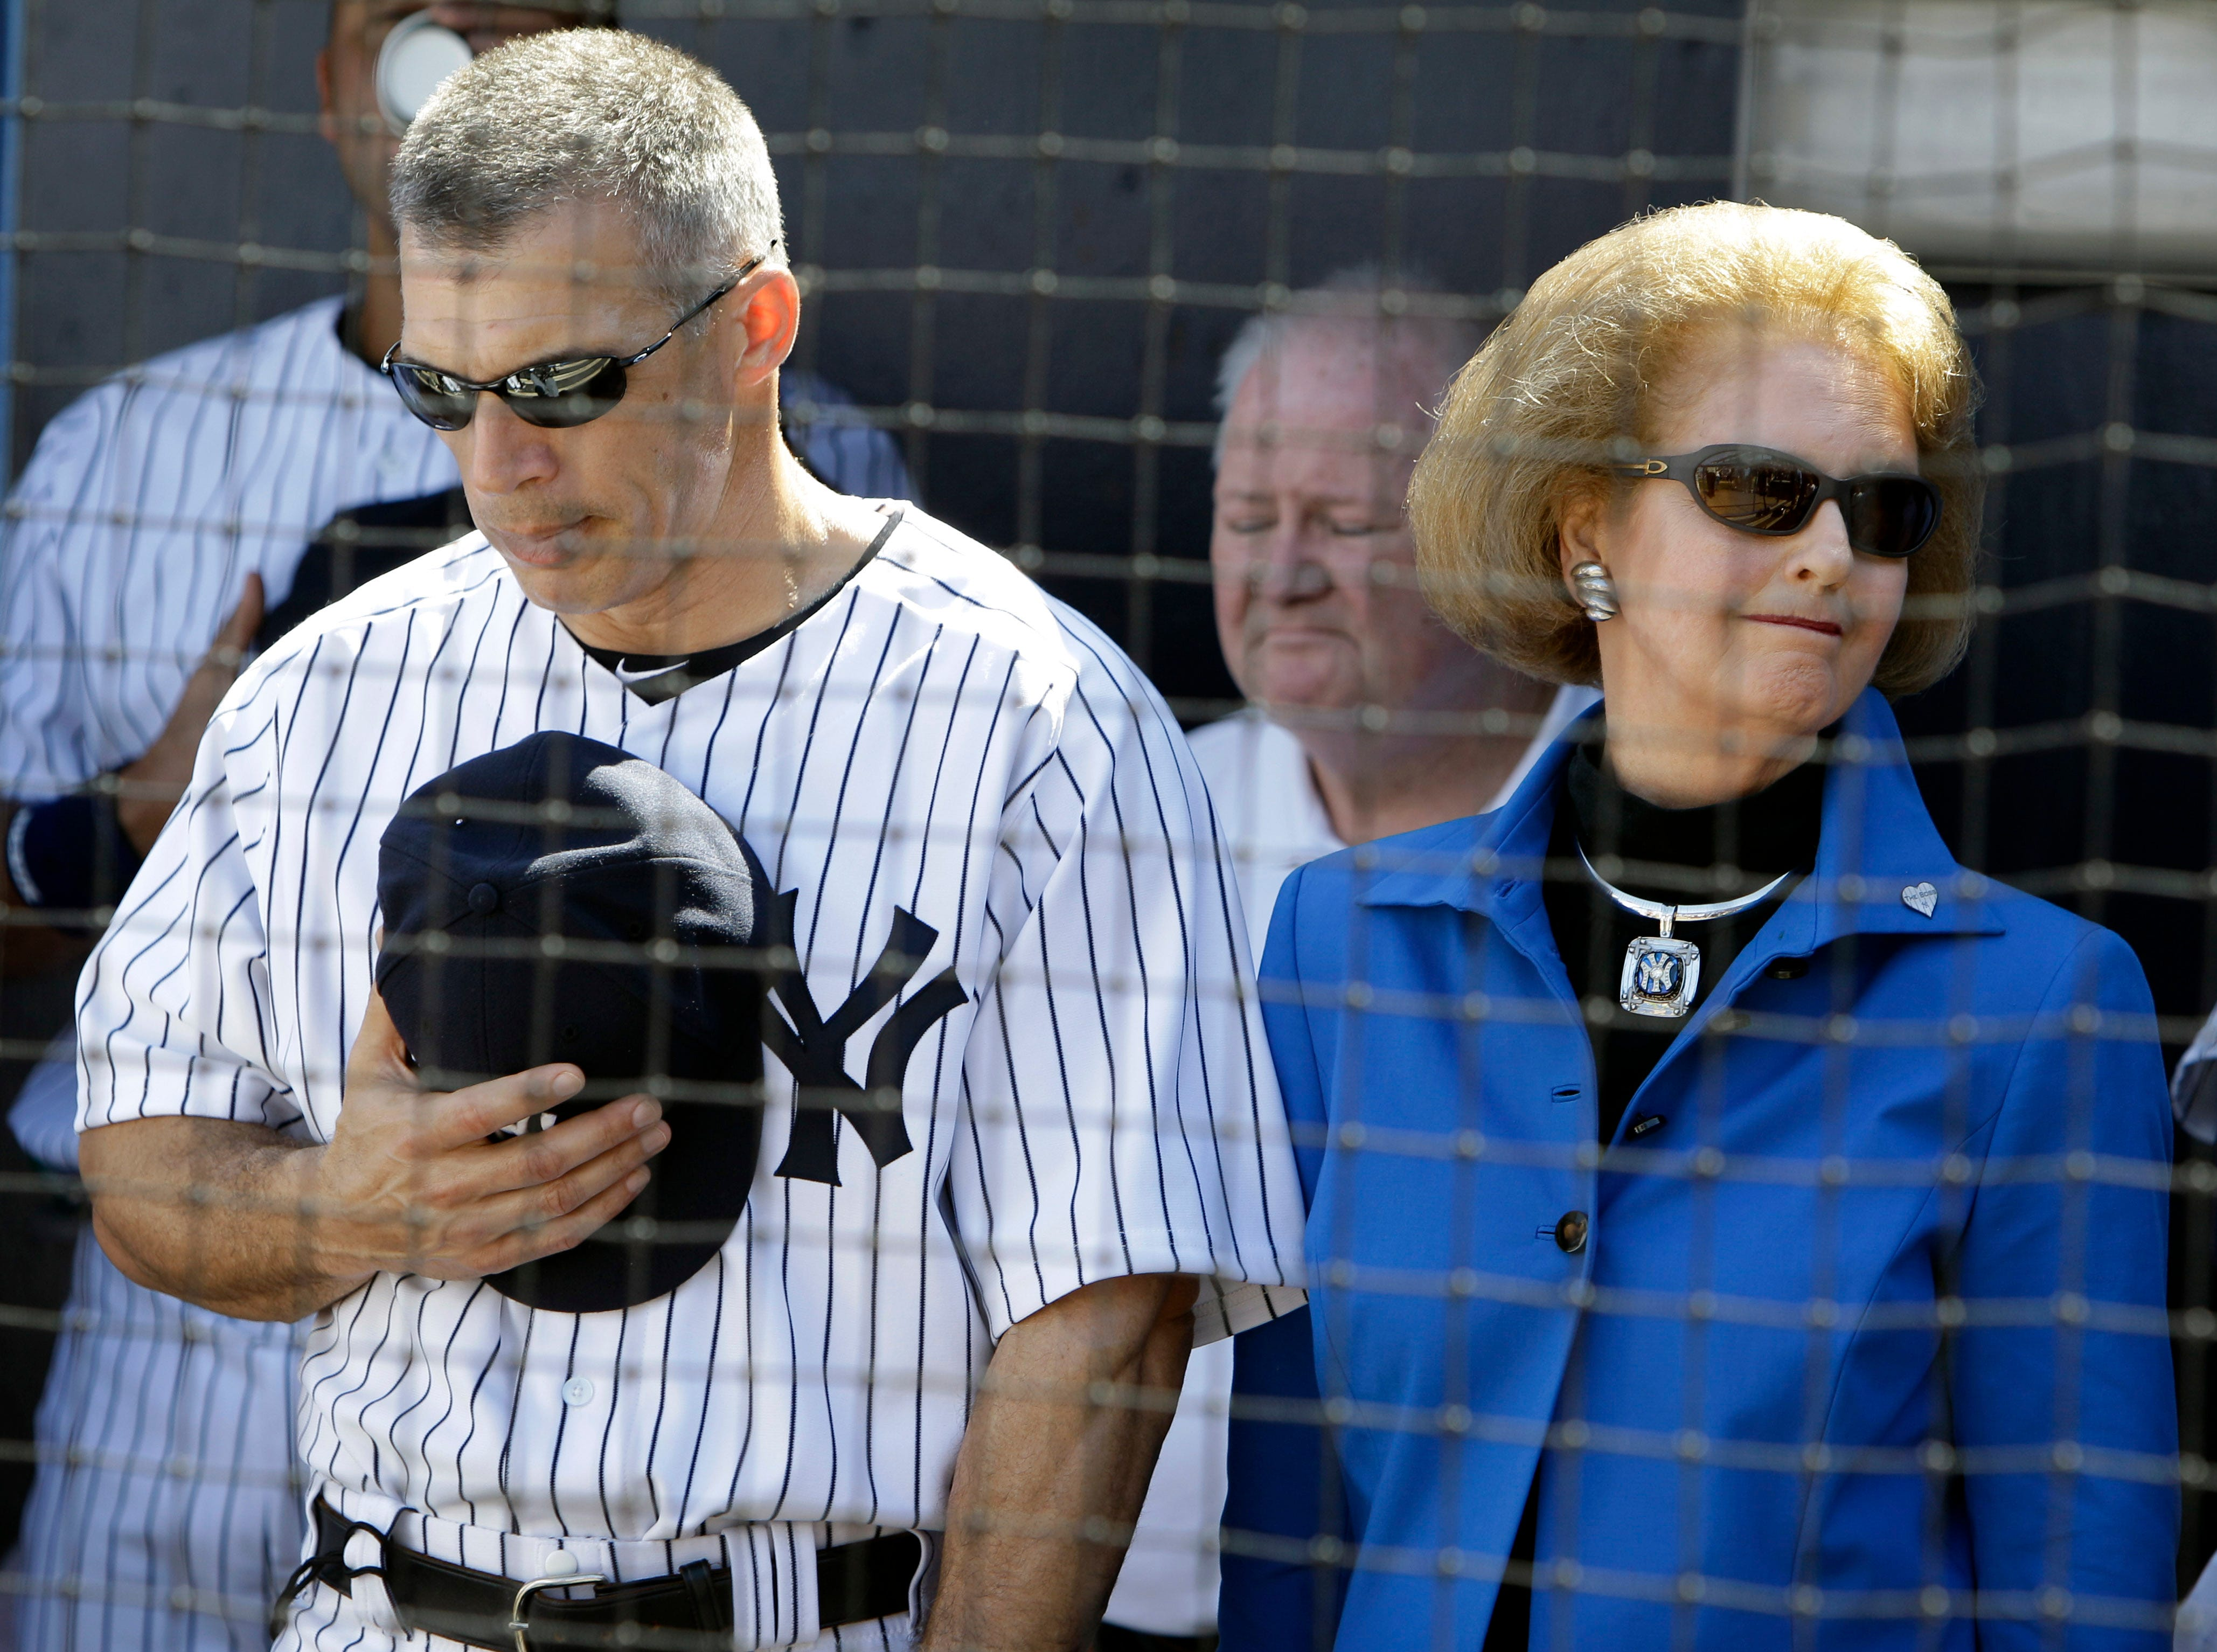 New York Yankees manager Joe Girardi stands with Joan Steinbrenner during a tribute for her husband the late George Steinbrenner before a baseball spring training game against the Philadelphia Phillies Saturday, Feb. 26, 2011, at Steinbrenner Field in Tampa, Fla. (AP Photo/Charlie Neibergall)